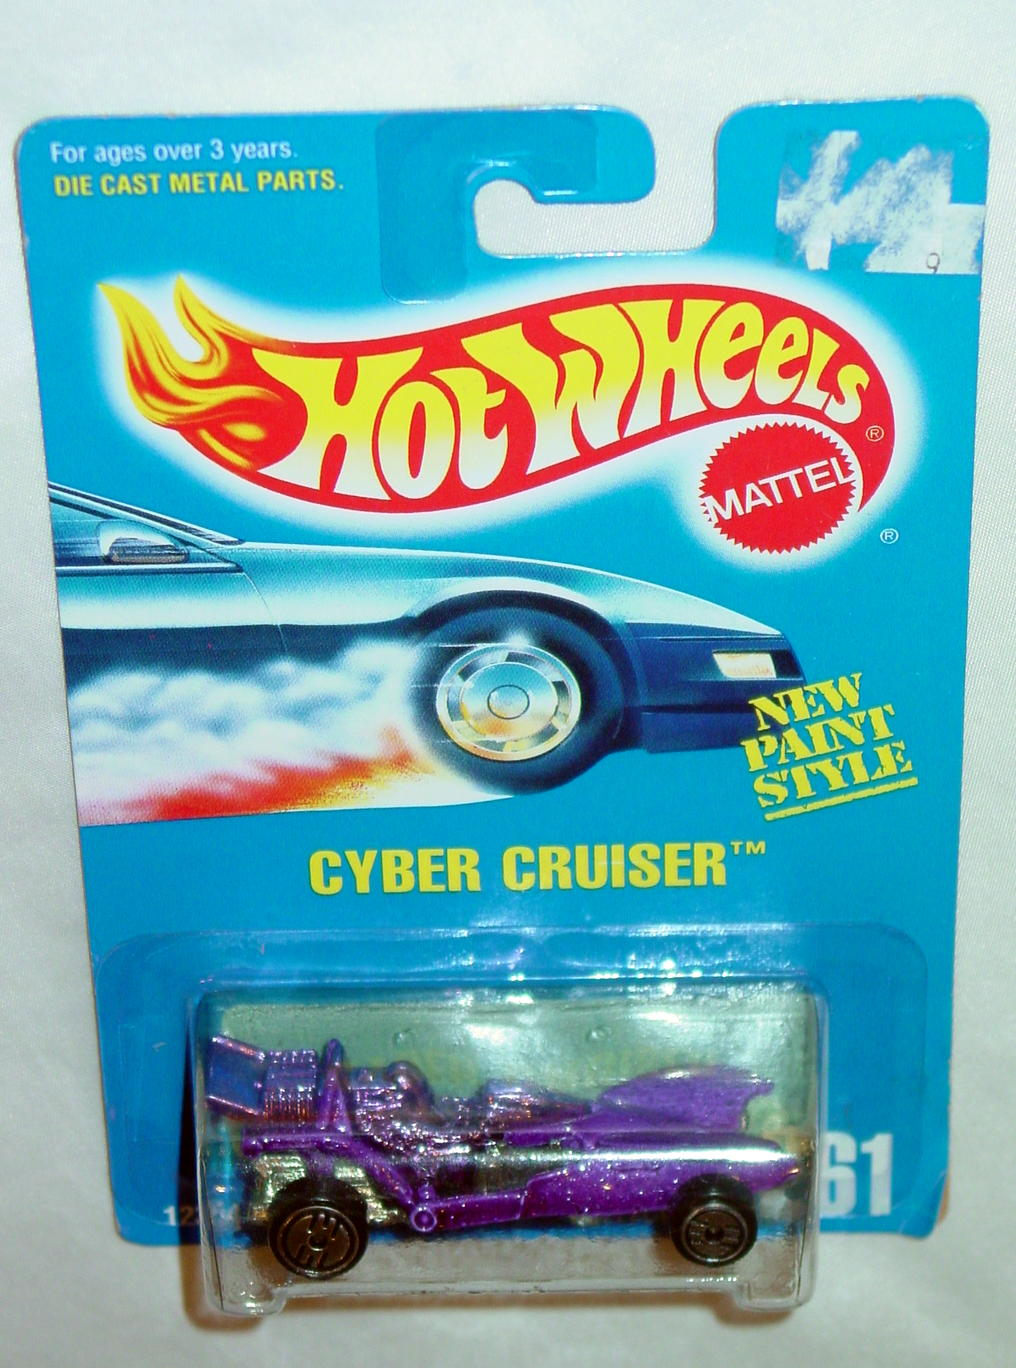 Blackwalls 12354 A - 261 Cyber Cruiser Purple UH C9 Card